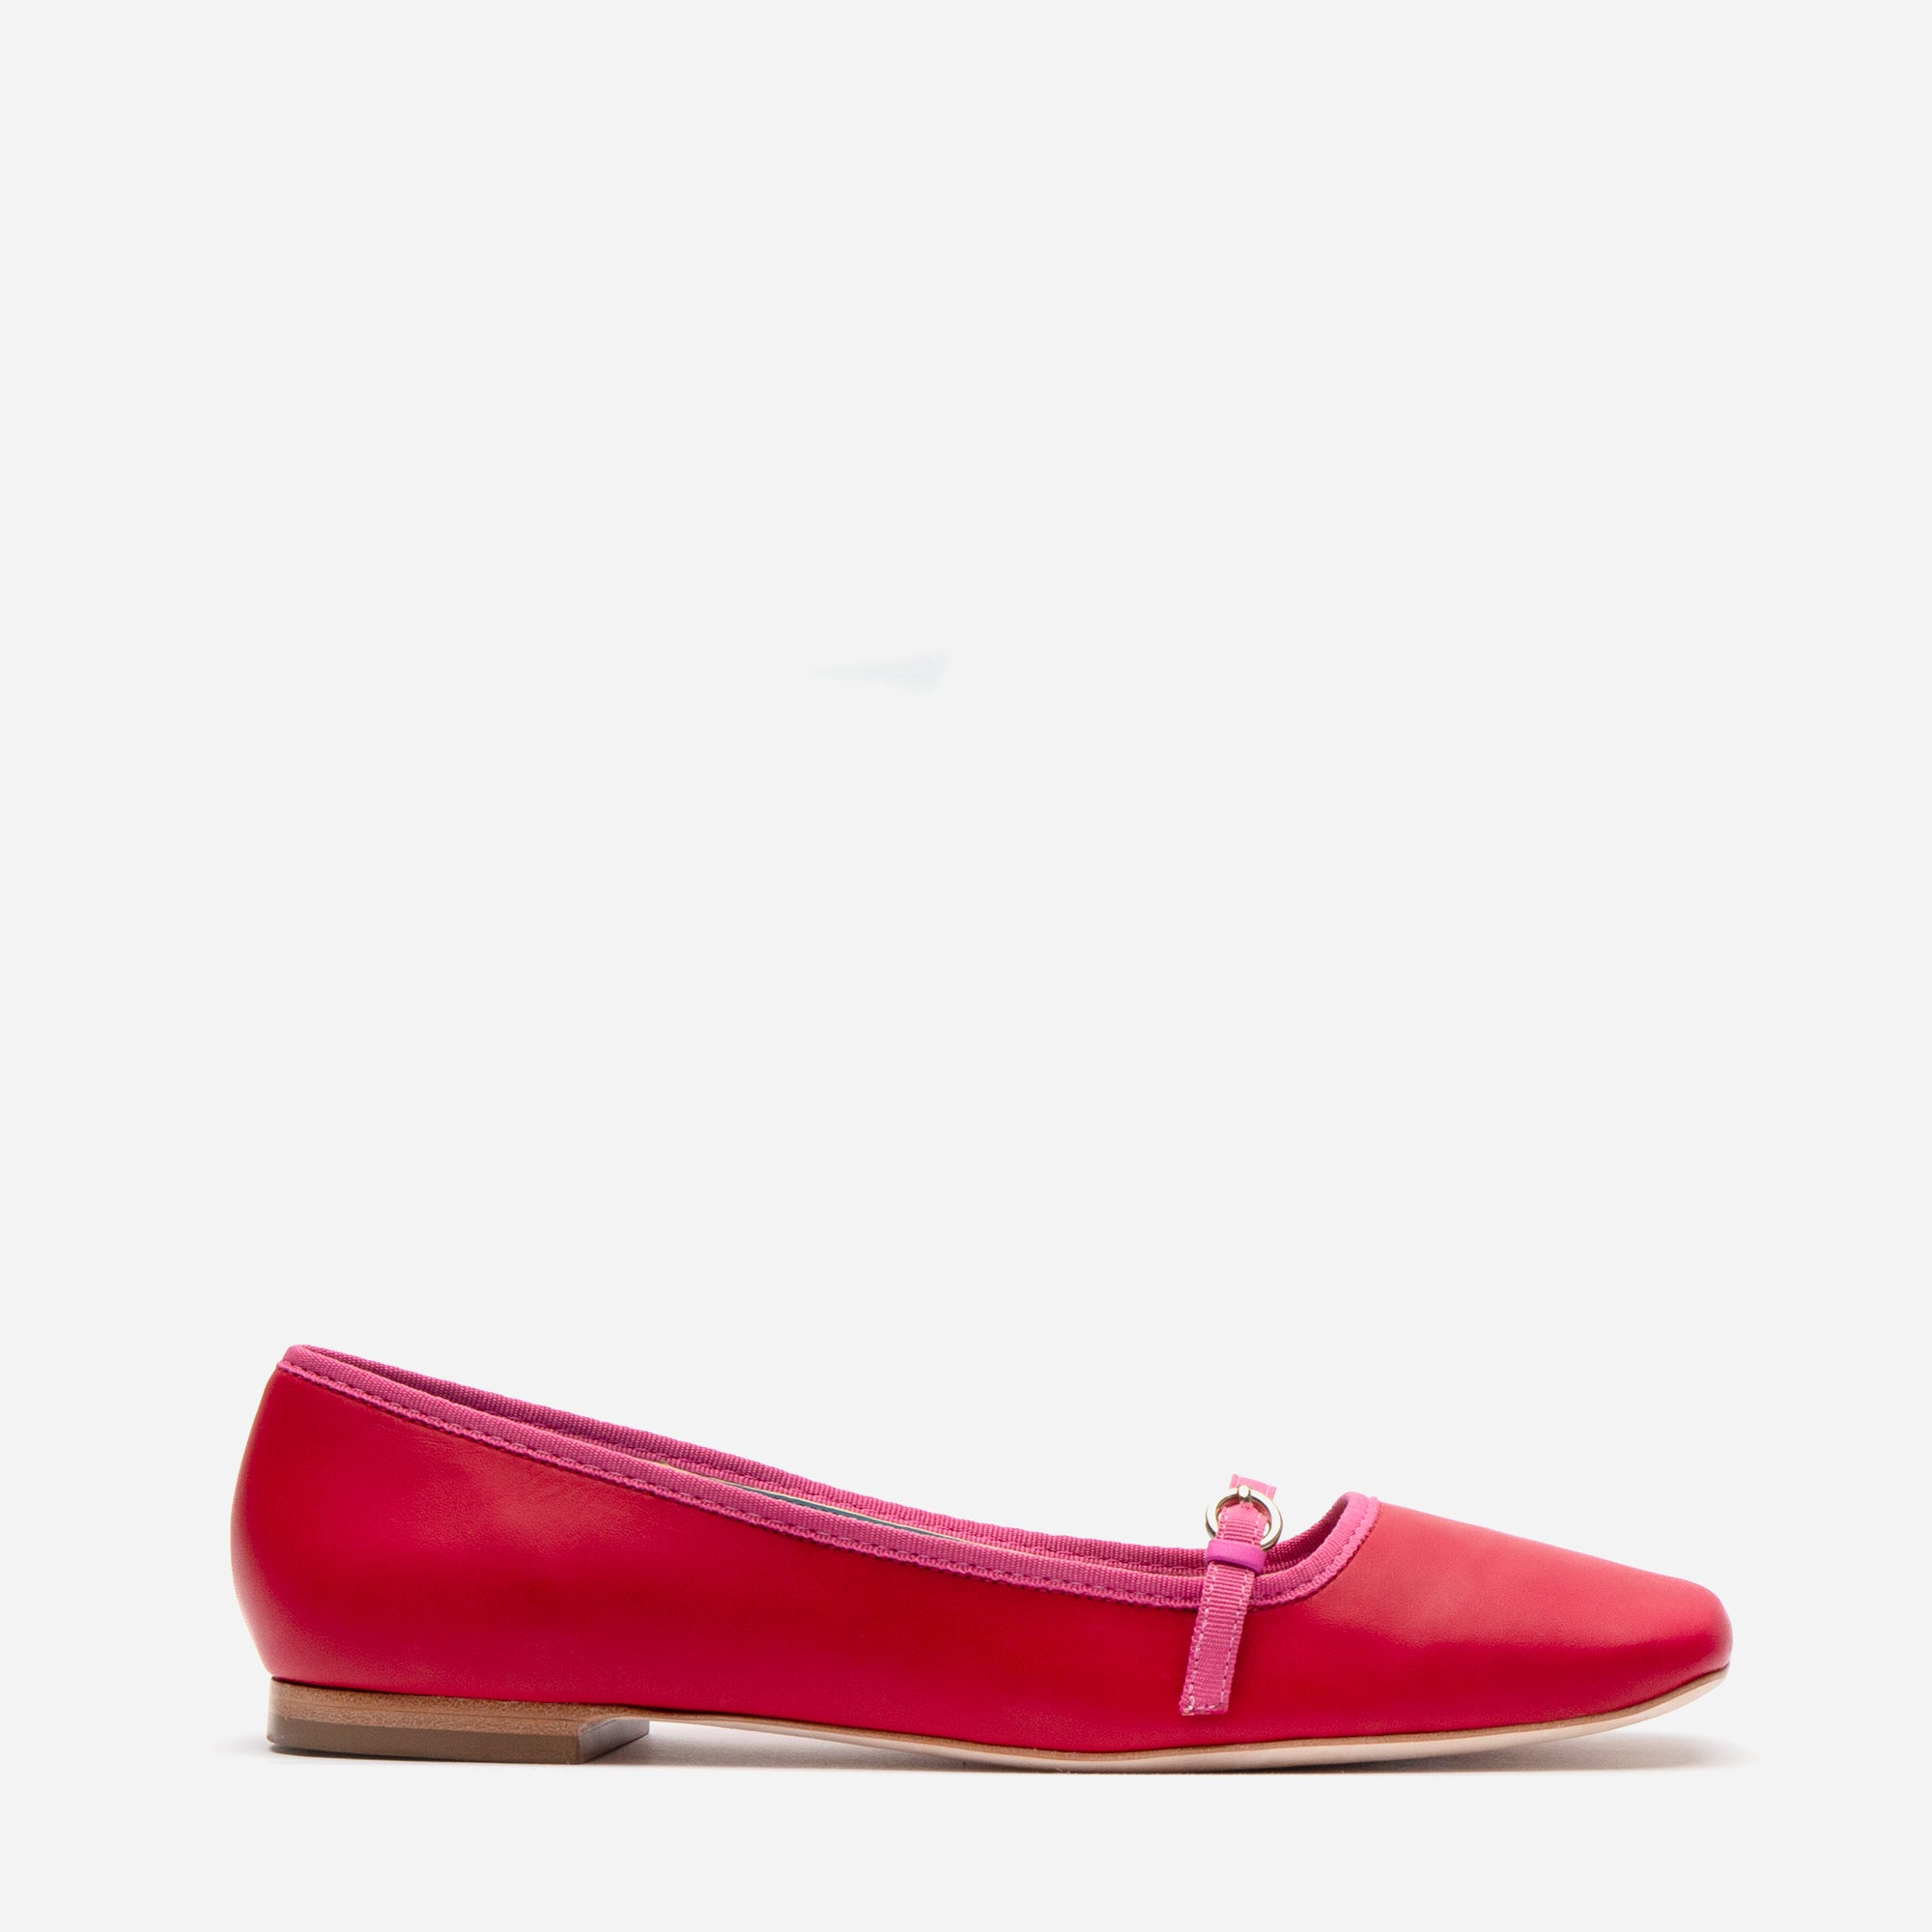 Josie Leather Flat Red Pink